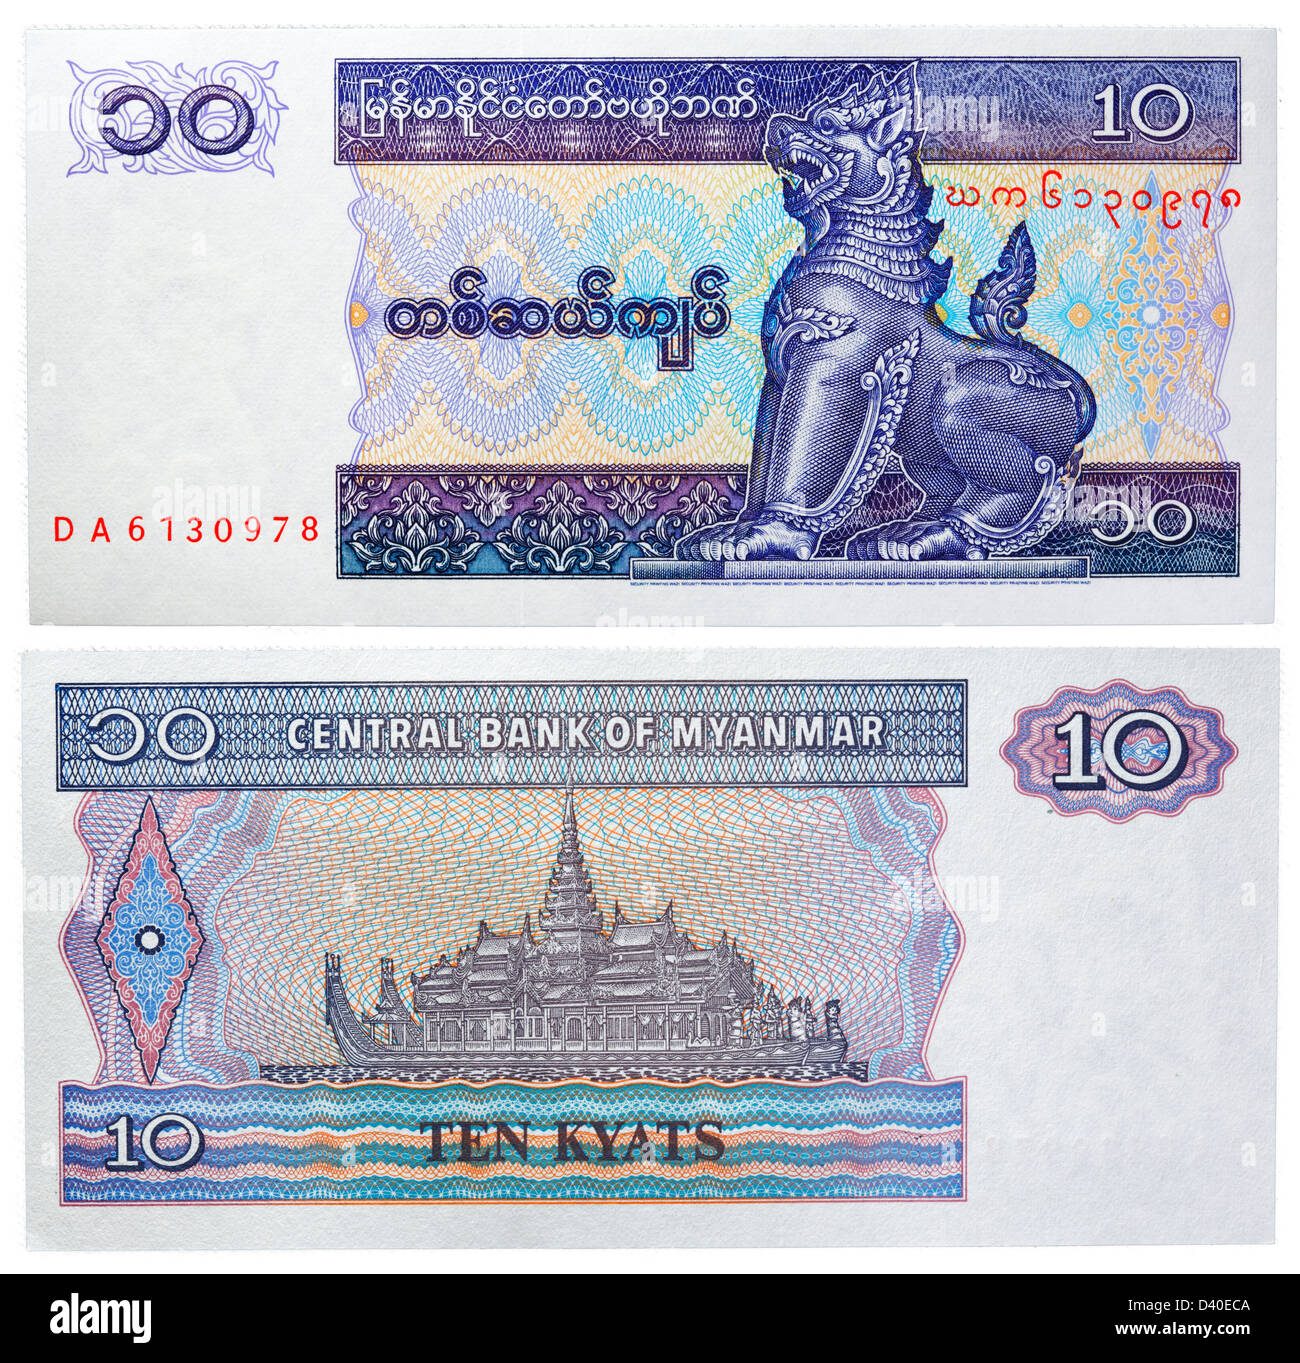 10 Kyats banknote, Mythical animal Chinze and elaborate barge, Myanmar, 1996 - Stock Image